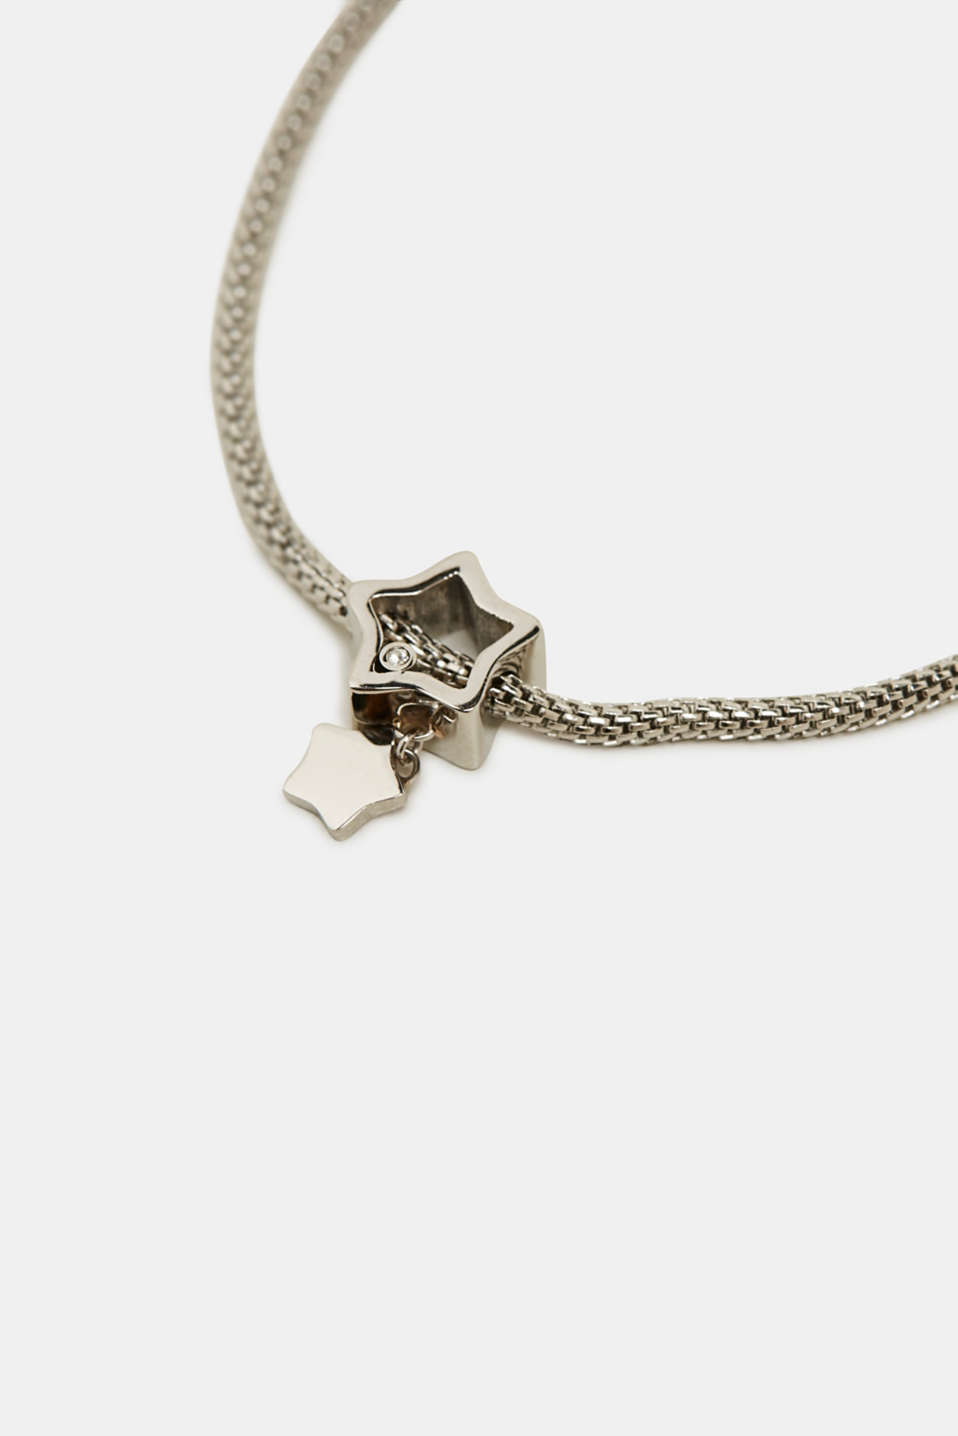 Bracelet with zirconia charm, stainless steel, SILVER, detail image number 1